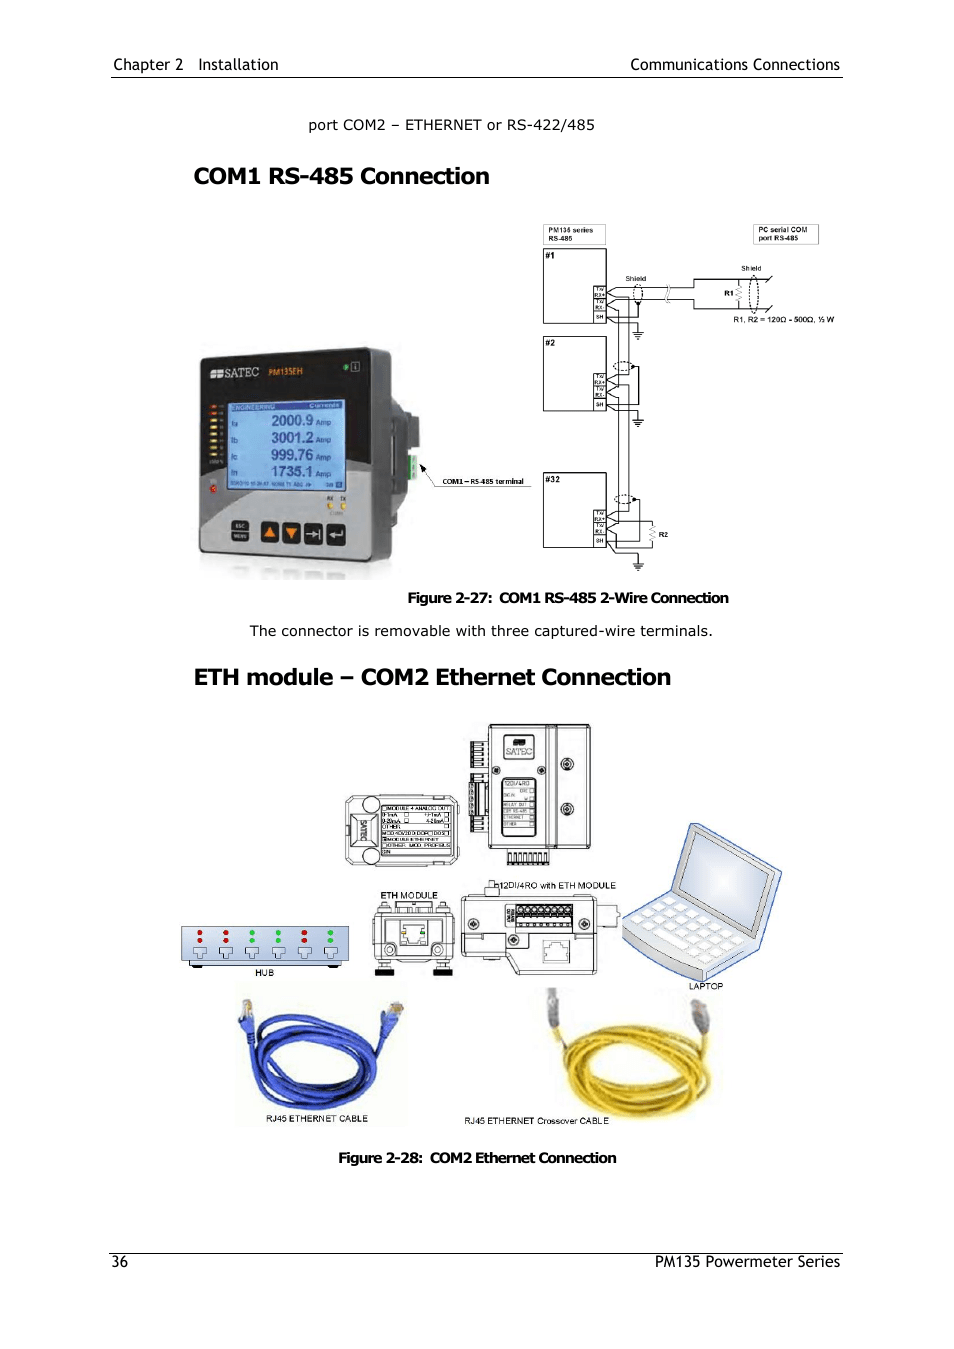 hight resolution of com1 rs 485 connection eth module com2 ethernet connection satec pm135 manual user manual page 36 166